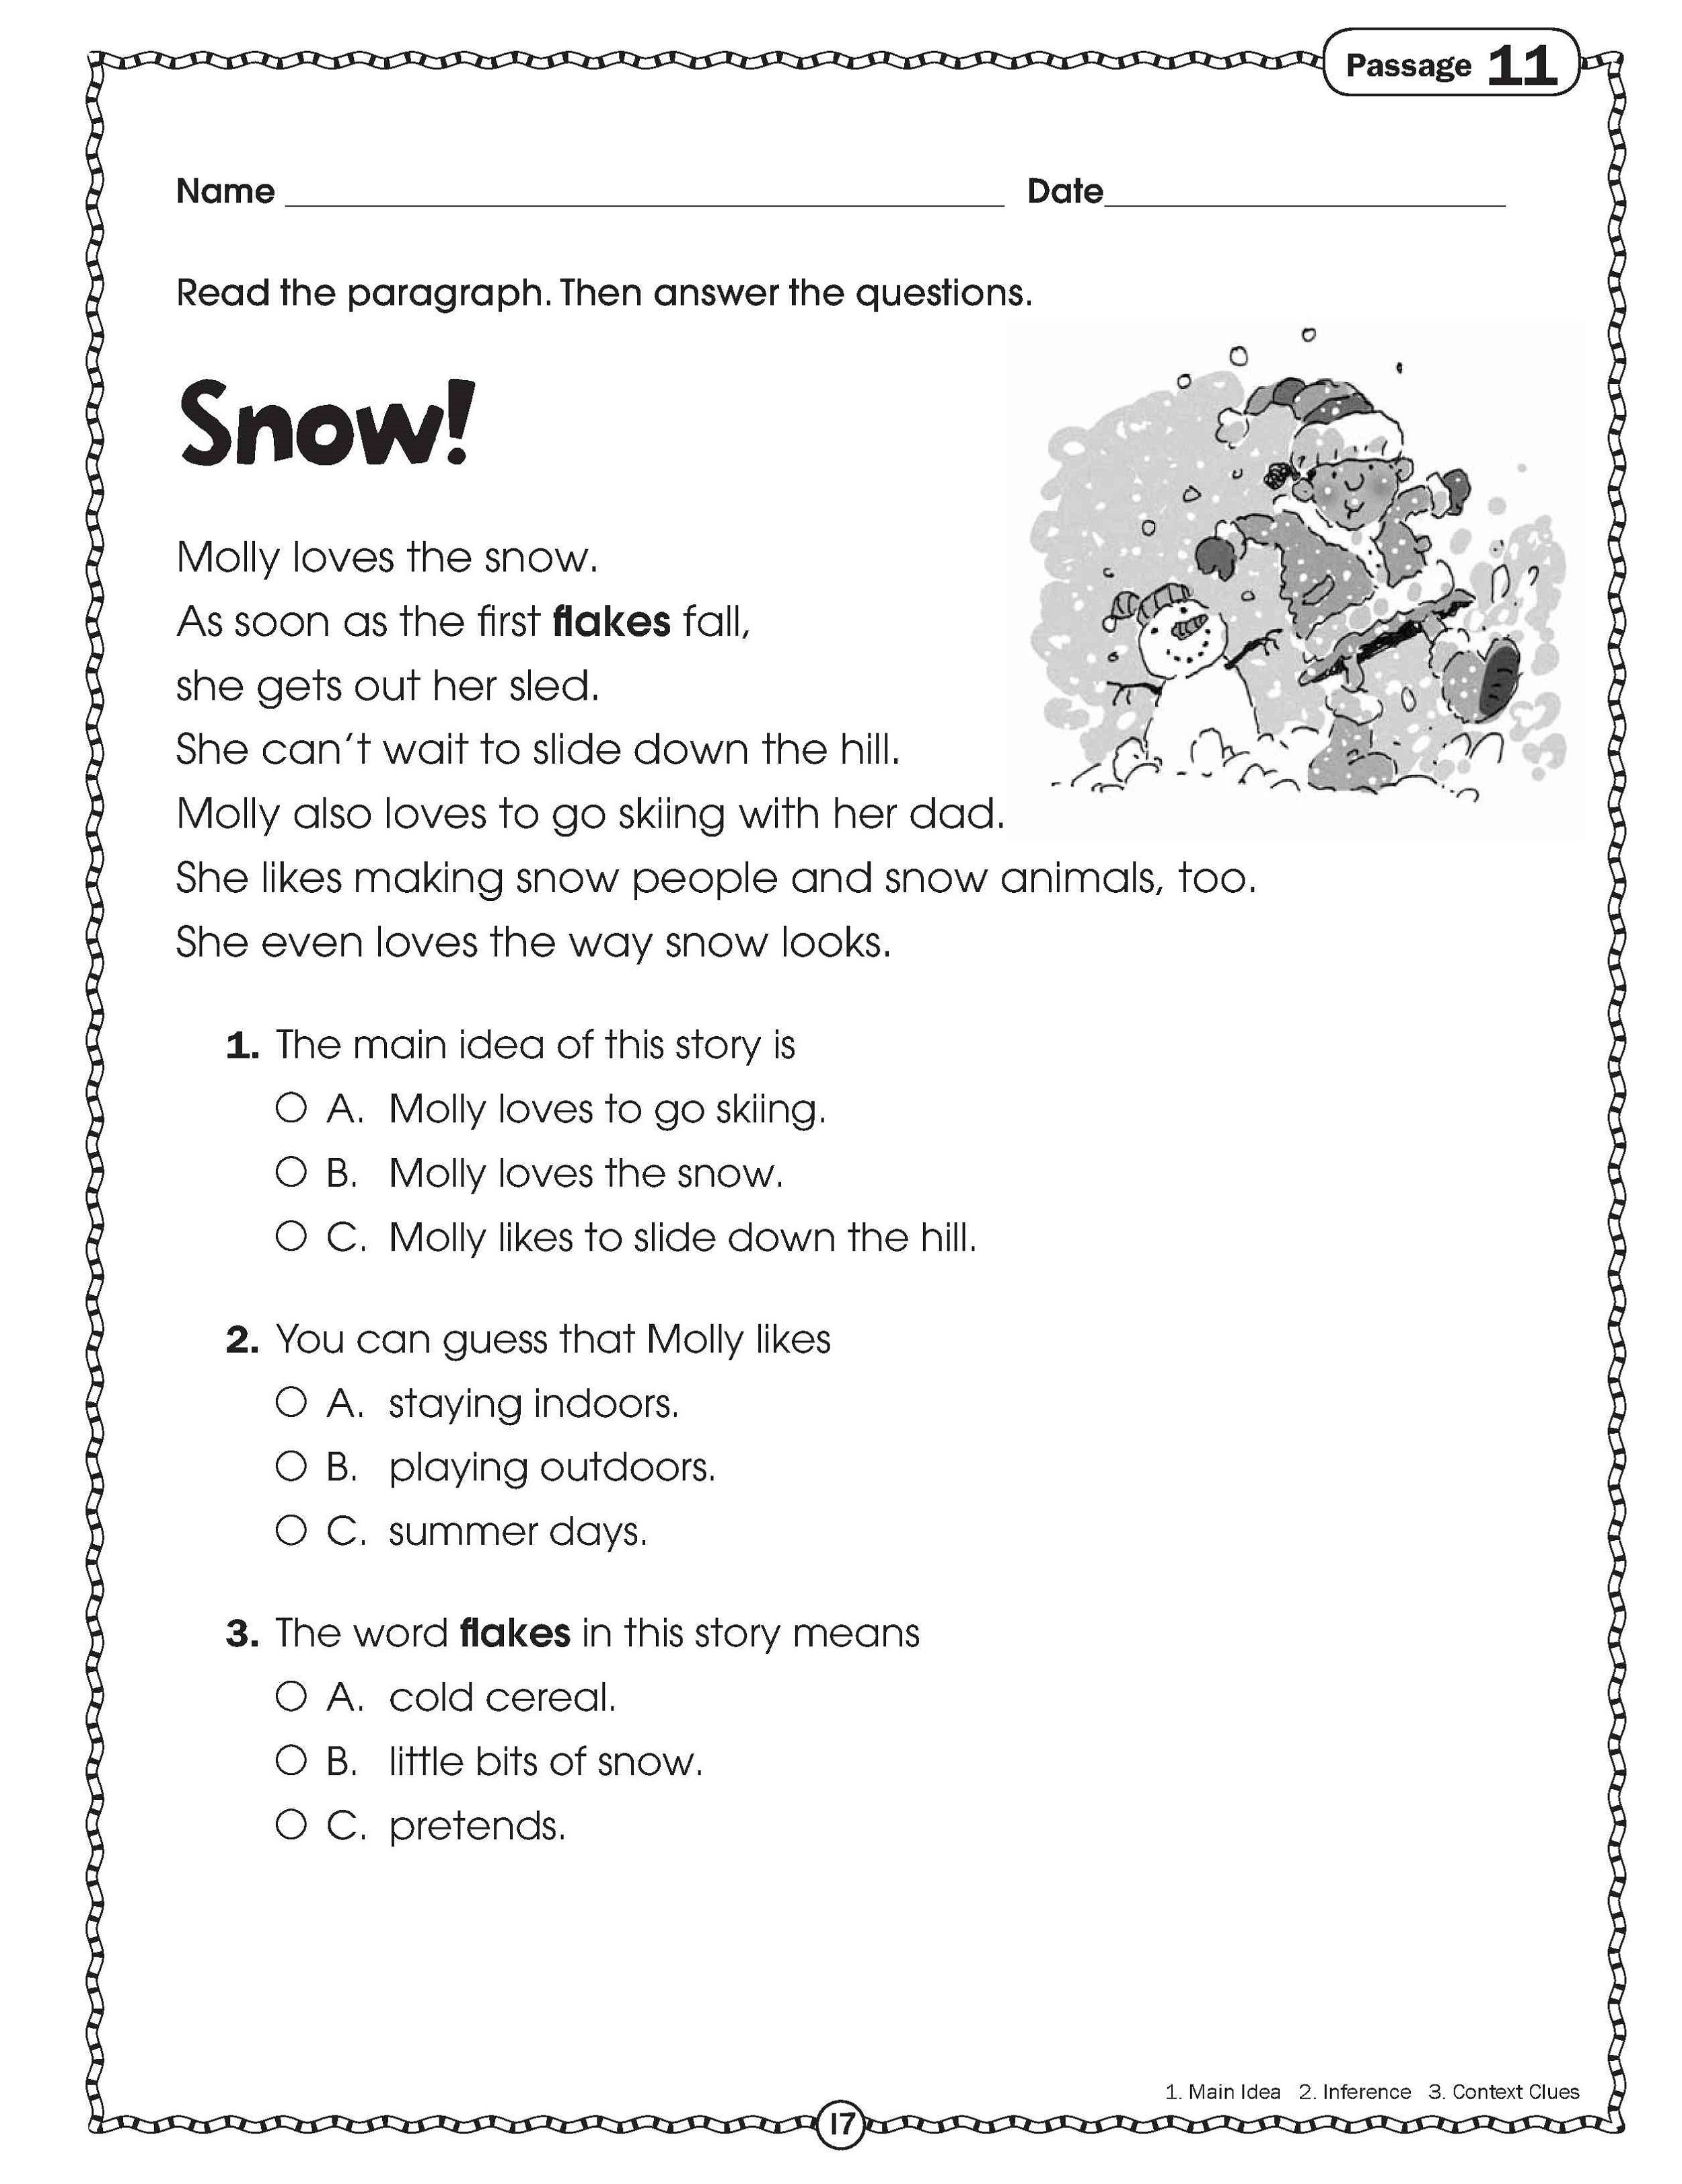 hight resolution of Free Handouts for Learning   Reading comprehension worksheets